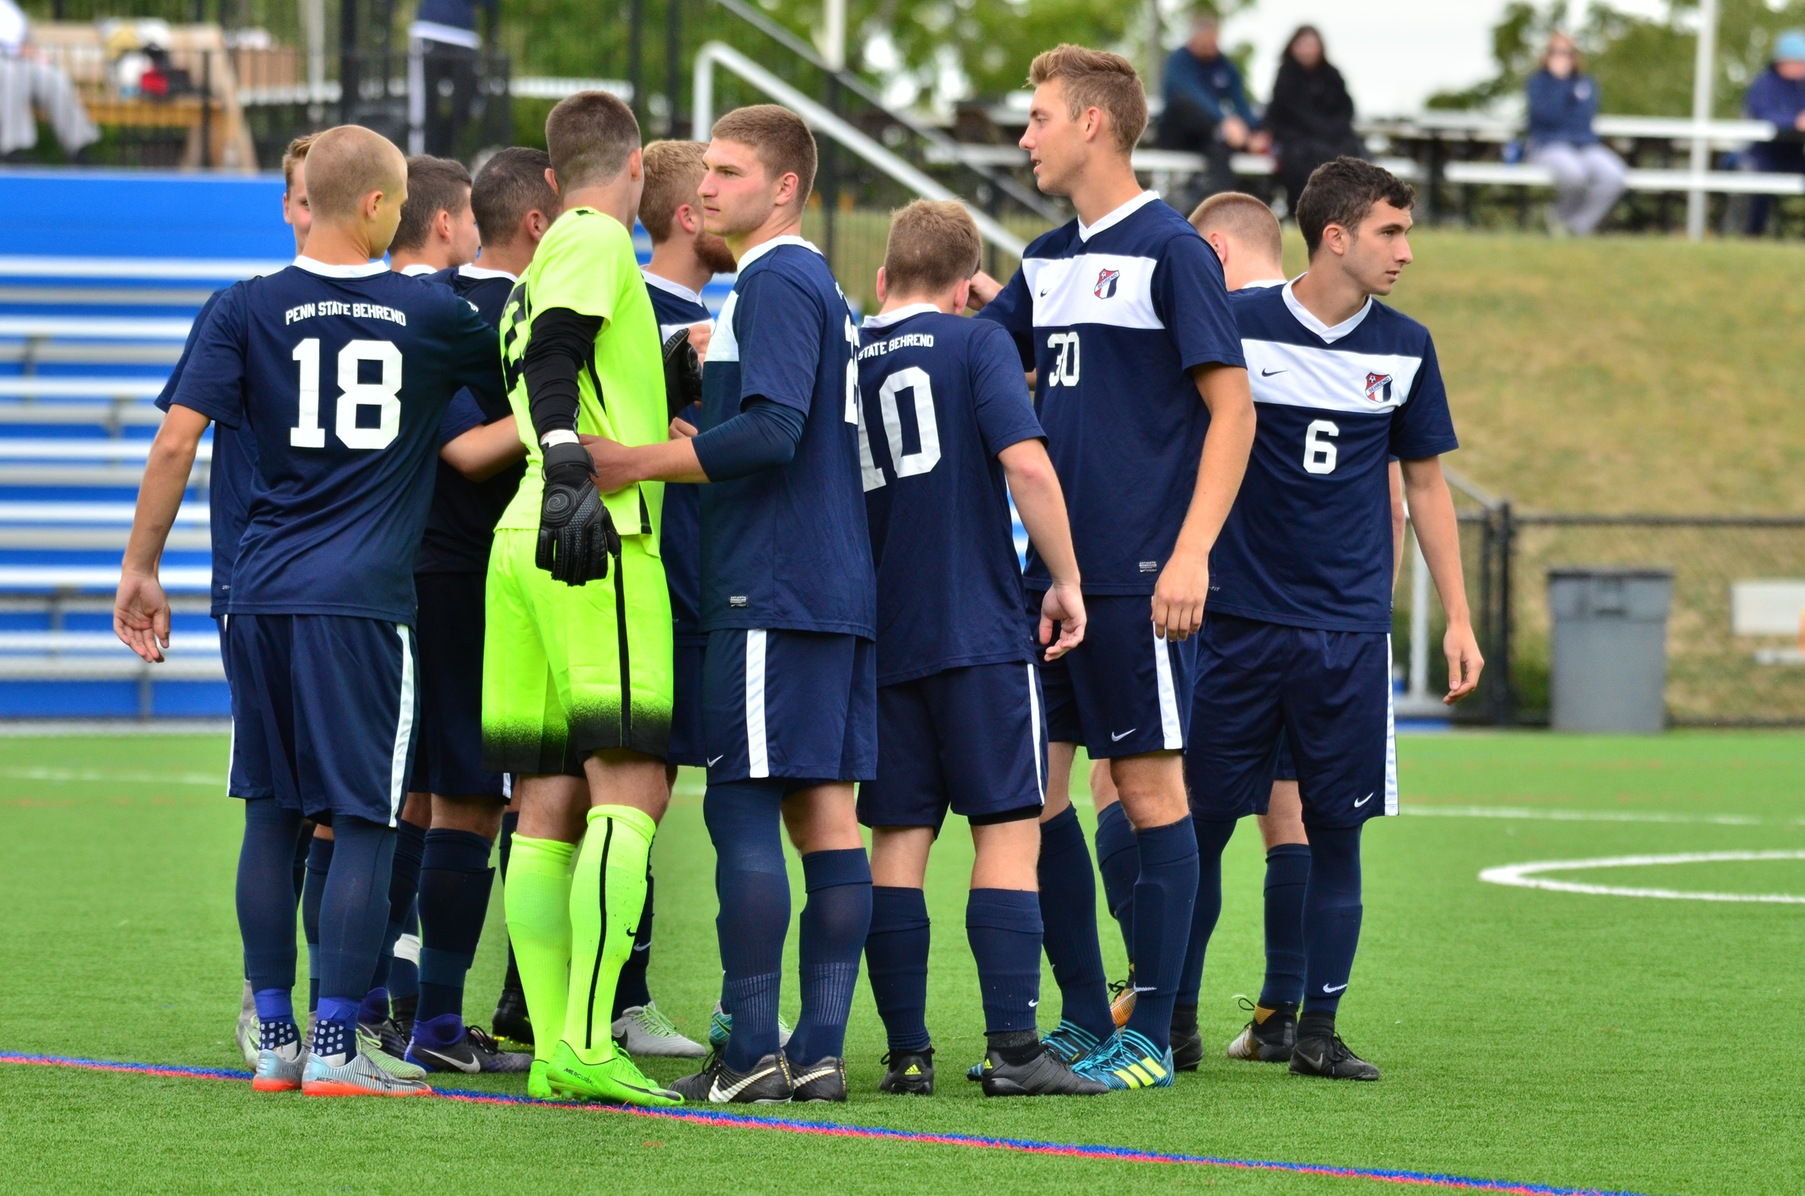 Men's Soccer Ranked Tenth in Great Lakes Region